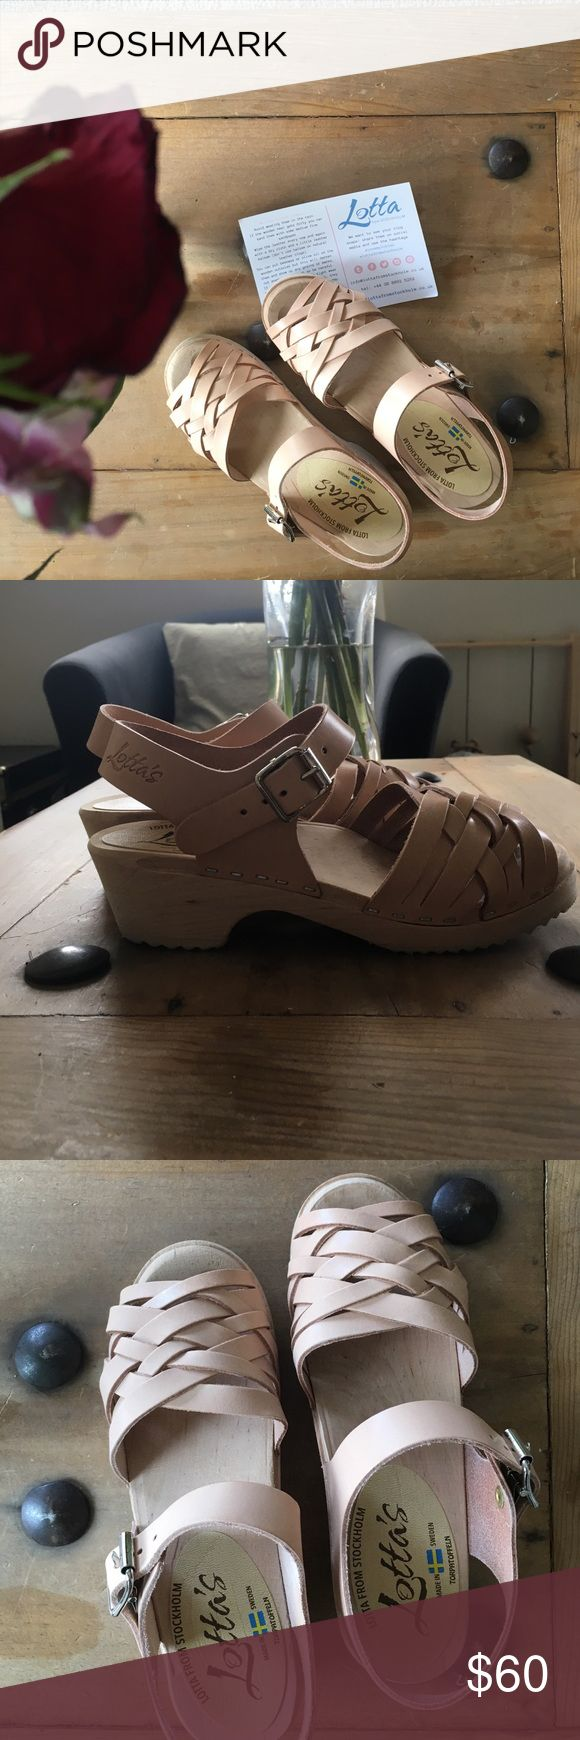 Lotta from Stockholm low heel clog sandals Brand new! Color is 'natural'. Beautiful woven sandals on a classic clog sole. Price if pretty firm because of the Poshmark deduction. Let me know if you have any questions. Lotta from Stockholm Shoes Mules & Clogs